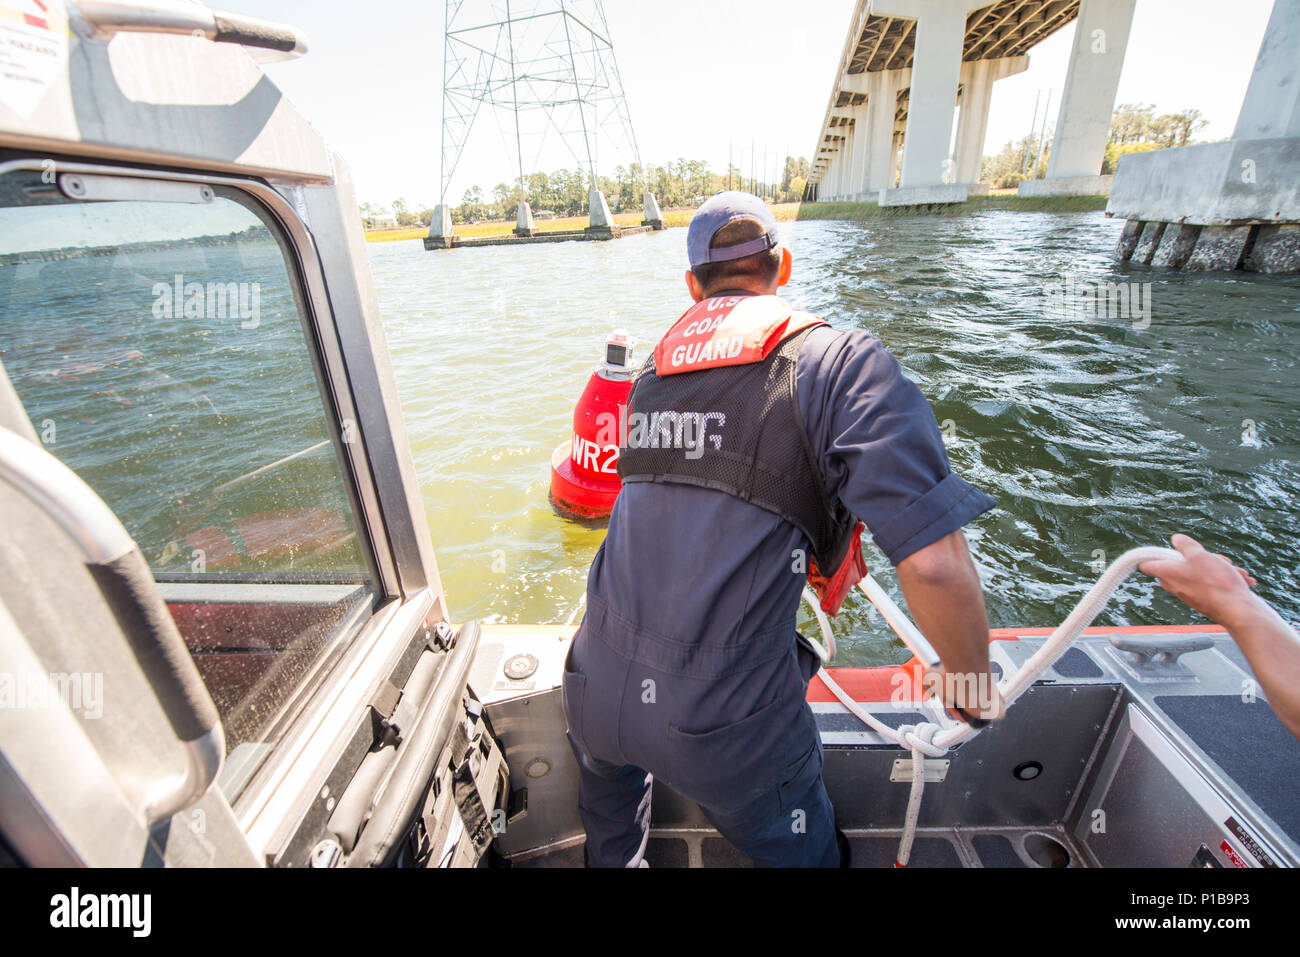 Seaman Elijah Squartsoff connects a towline to a buoy Oct. 10, 2016 in Skull Creek, South Carolina. Coast Guard crews worked diligently to verify and repair aids-to-navigation to reopen the Port of Savannah following Hurricane Matthew. U.S. U.S. Coast Guard photo by Petty Officer 2nd Class Christopher M. Yaw/PADET Jacksonville D7 External Affairs Stock Photo